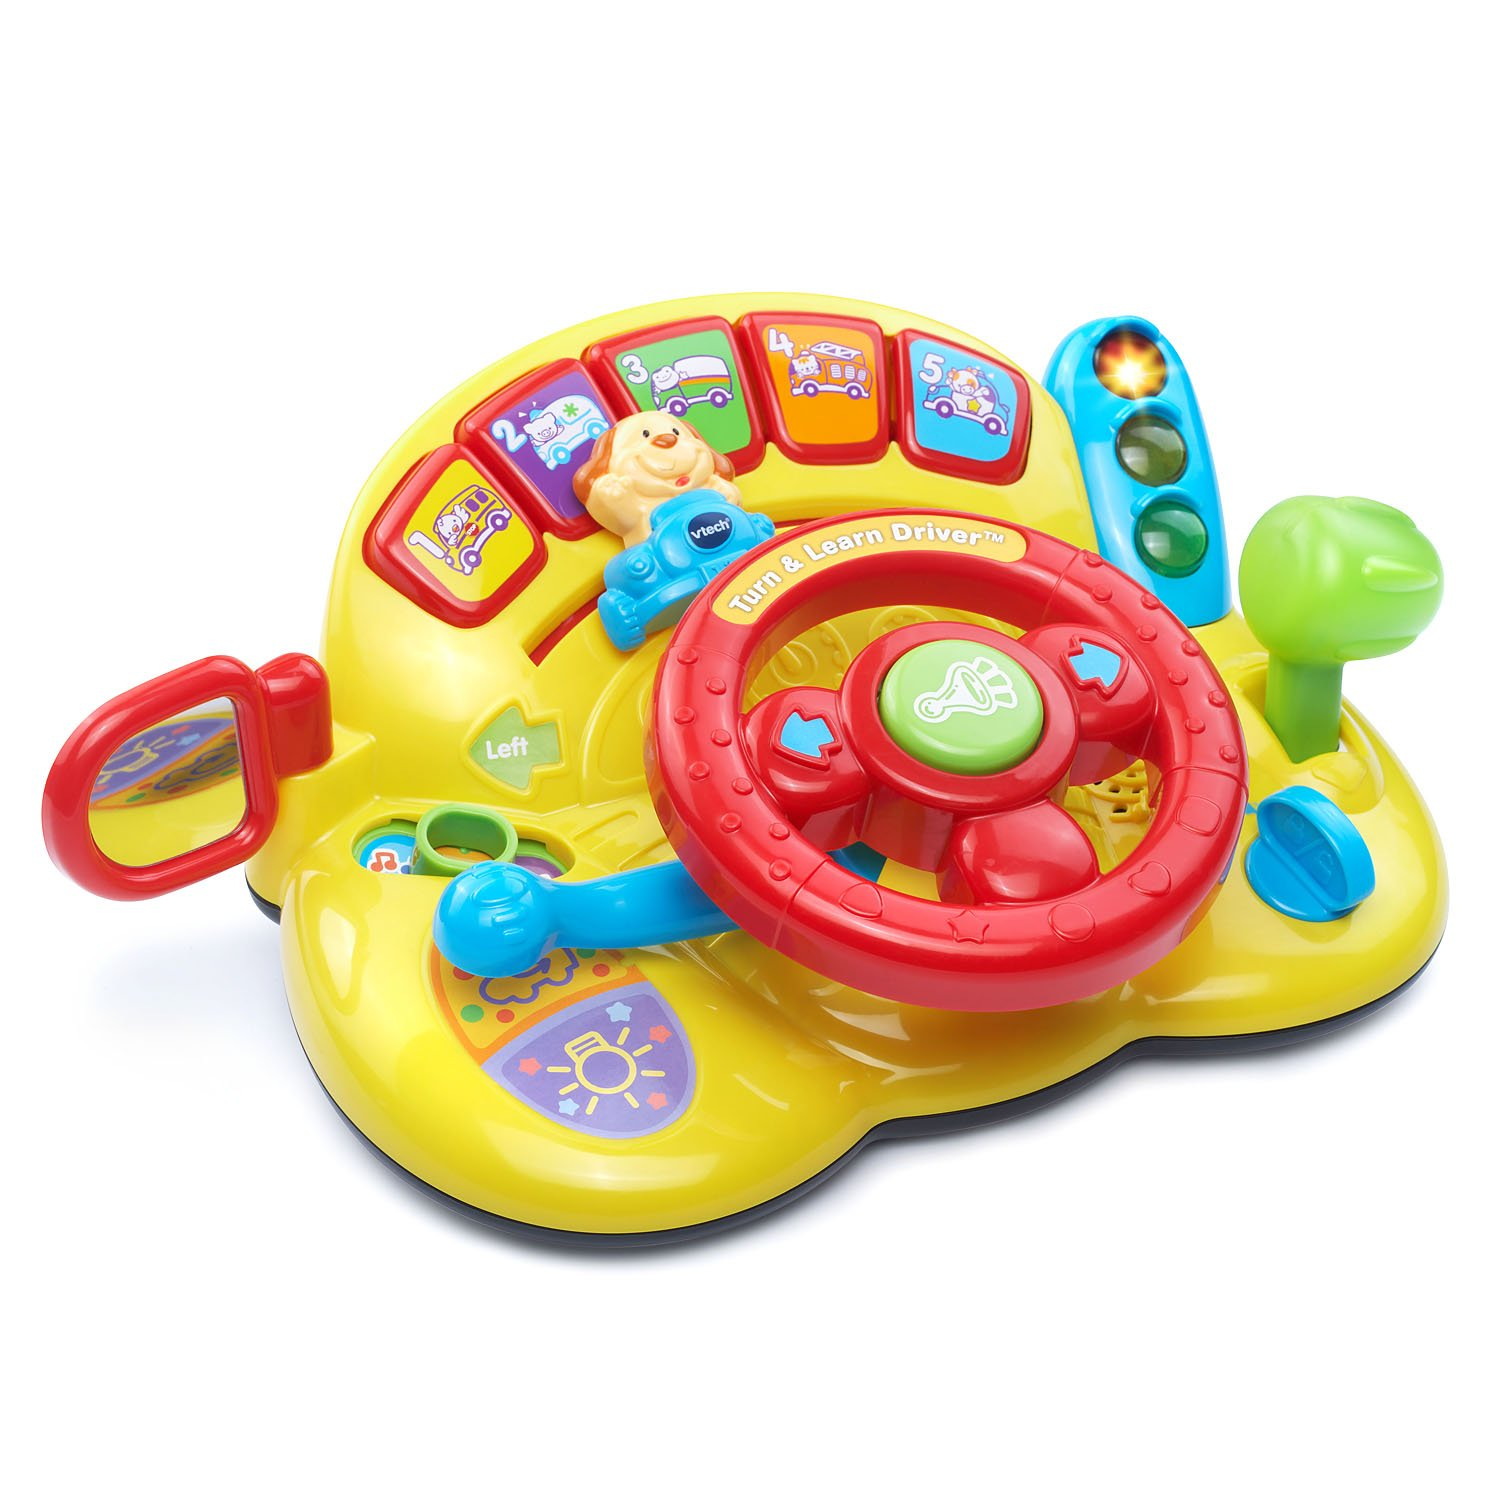 Amazon Kids Electronics Toys & Games Electronic Learning